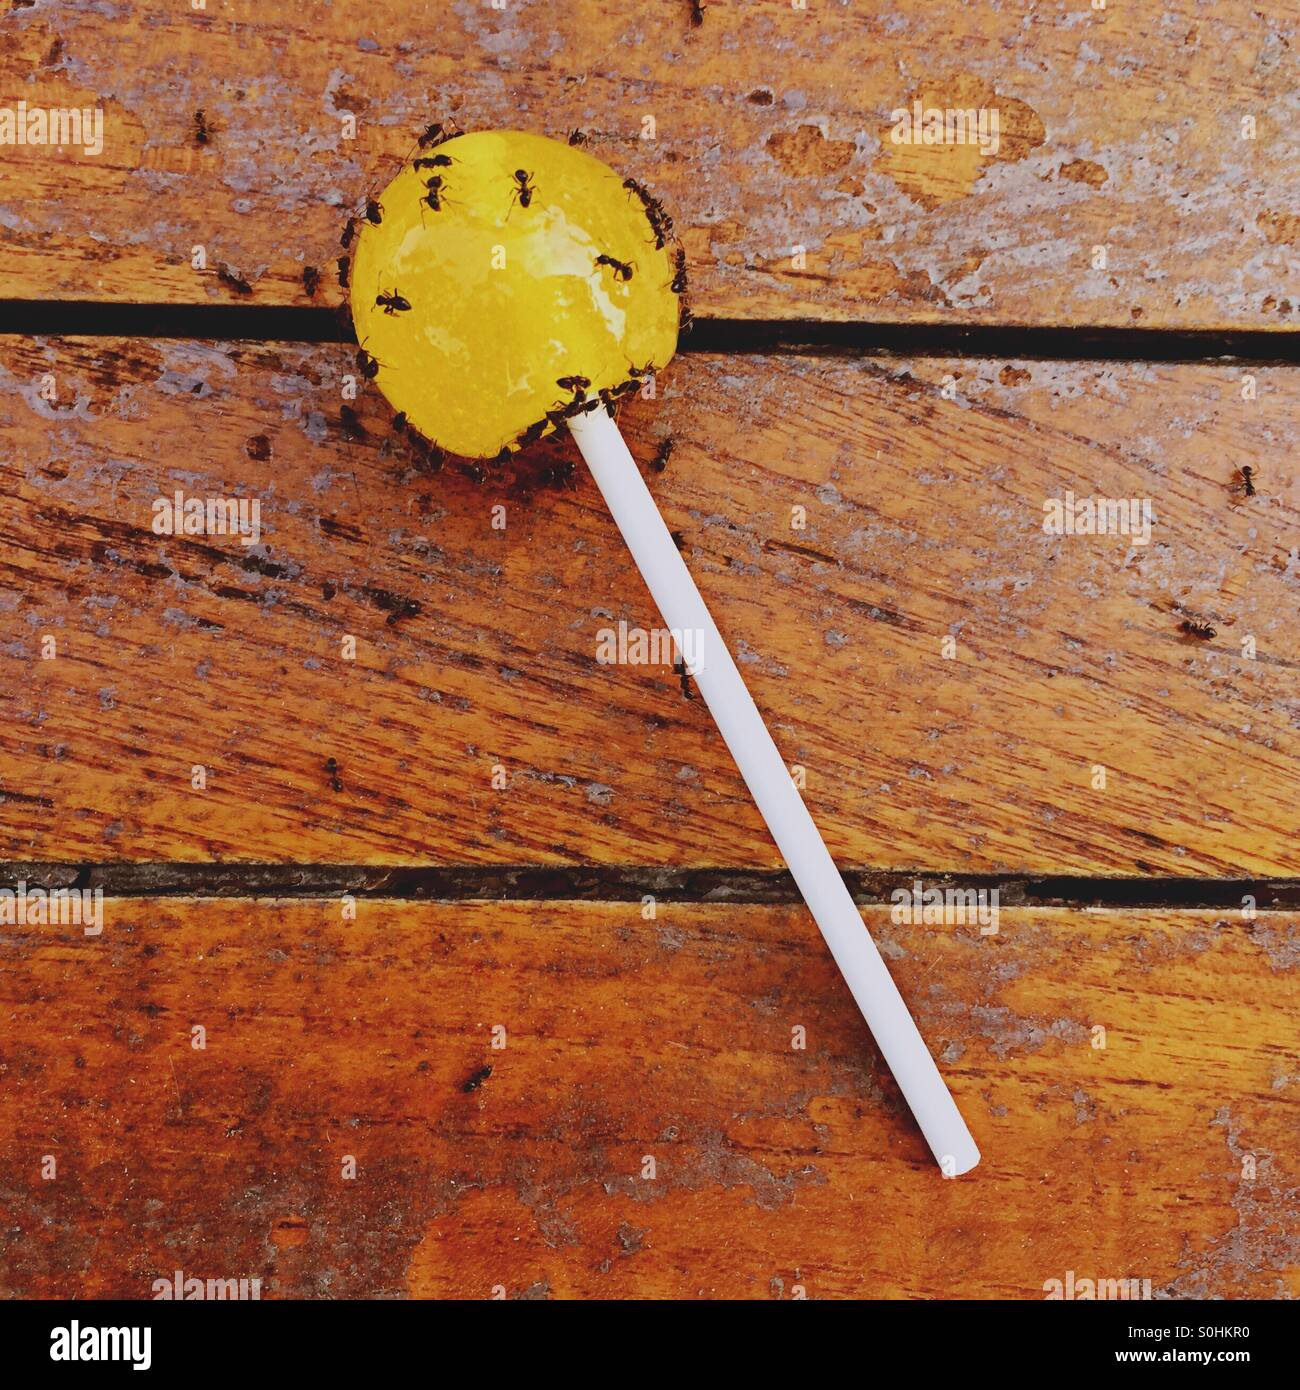 Lemon Lollipop covered in ants on a wooden table Stock Photo